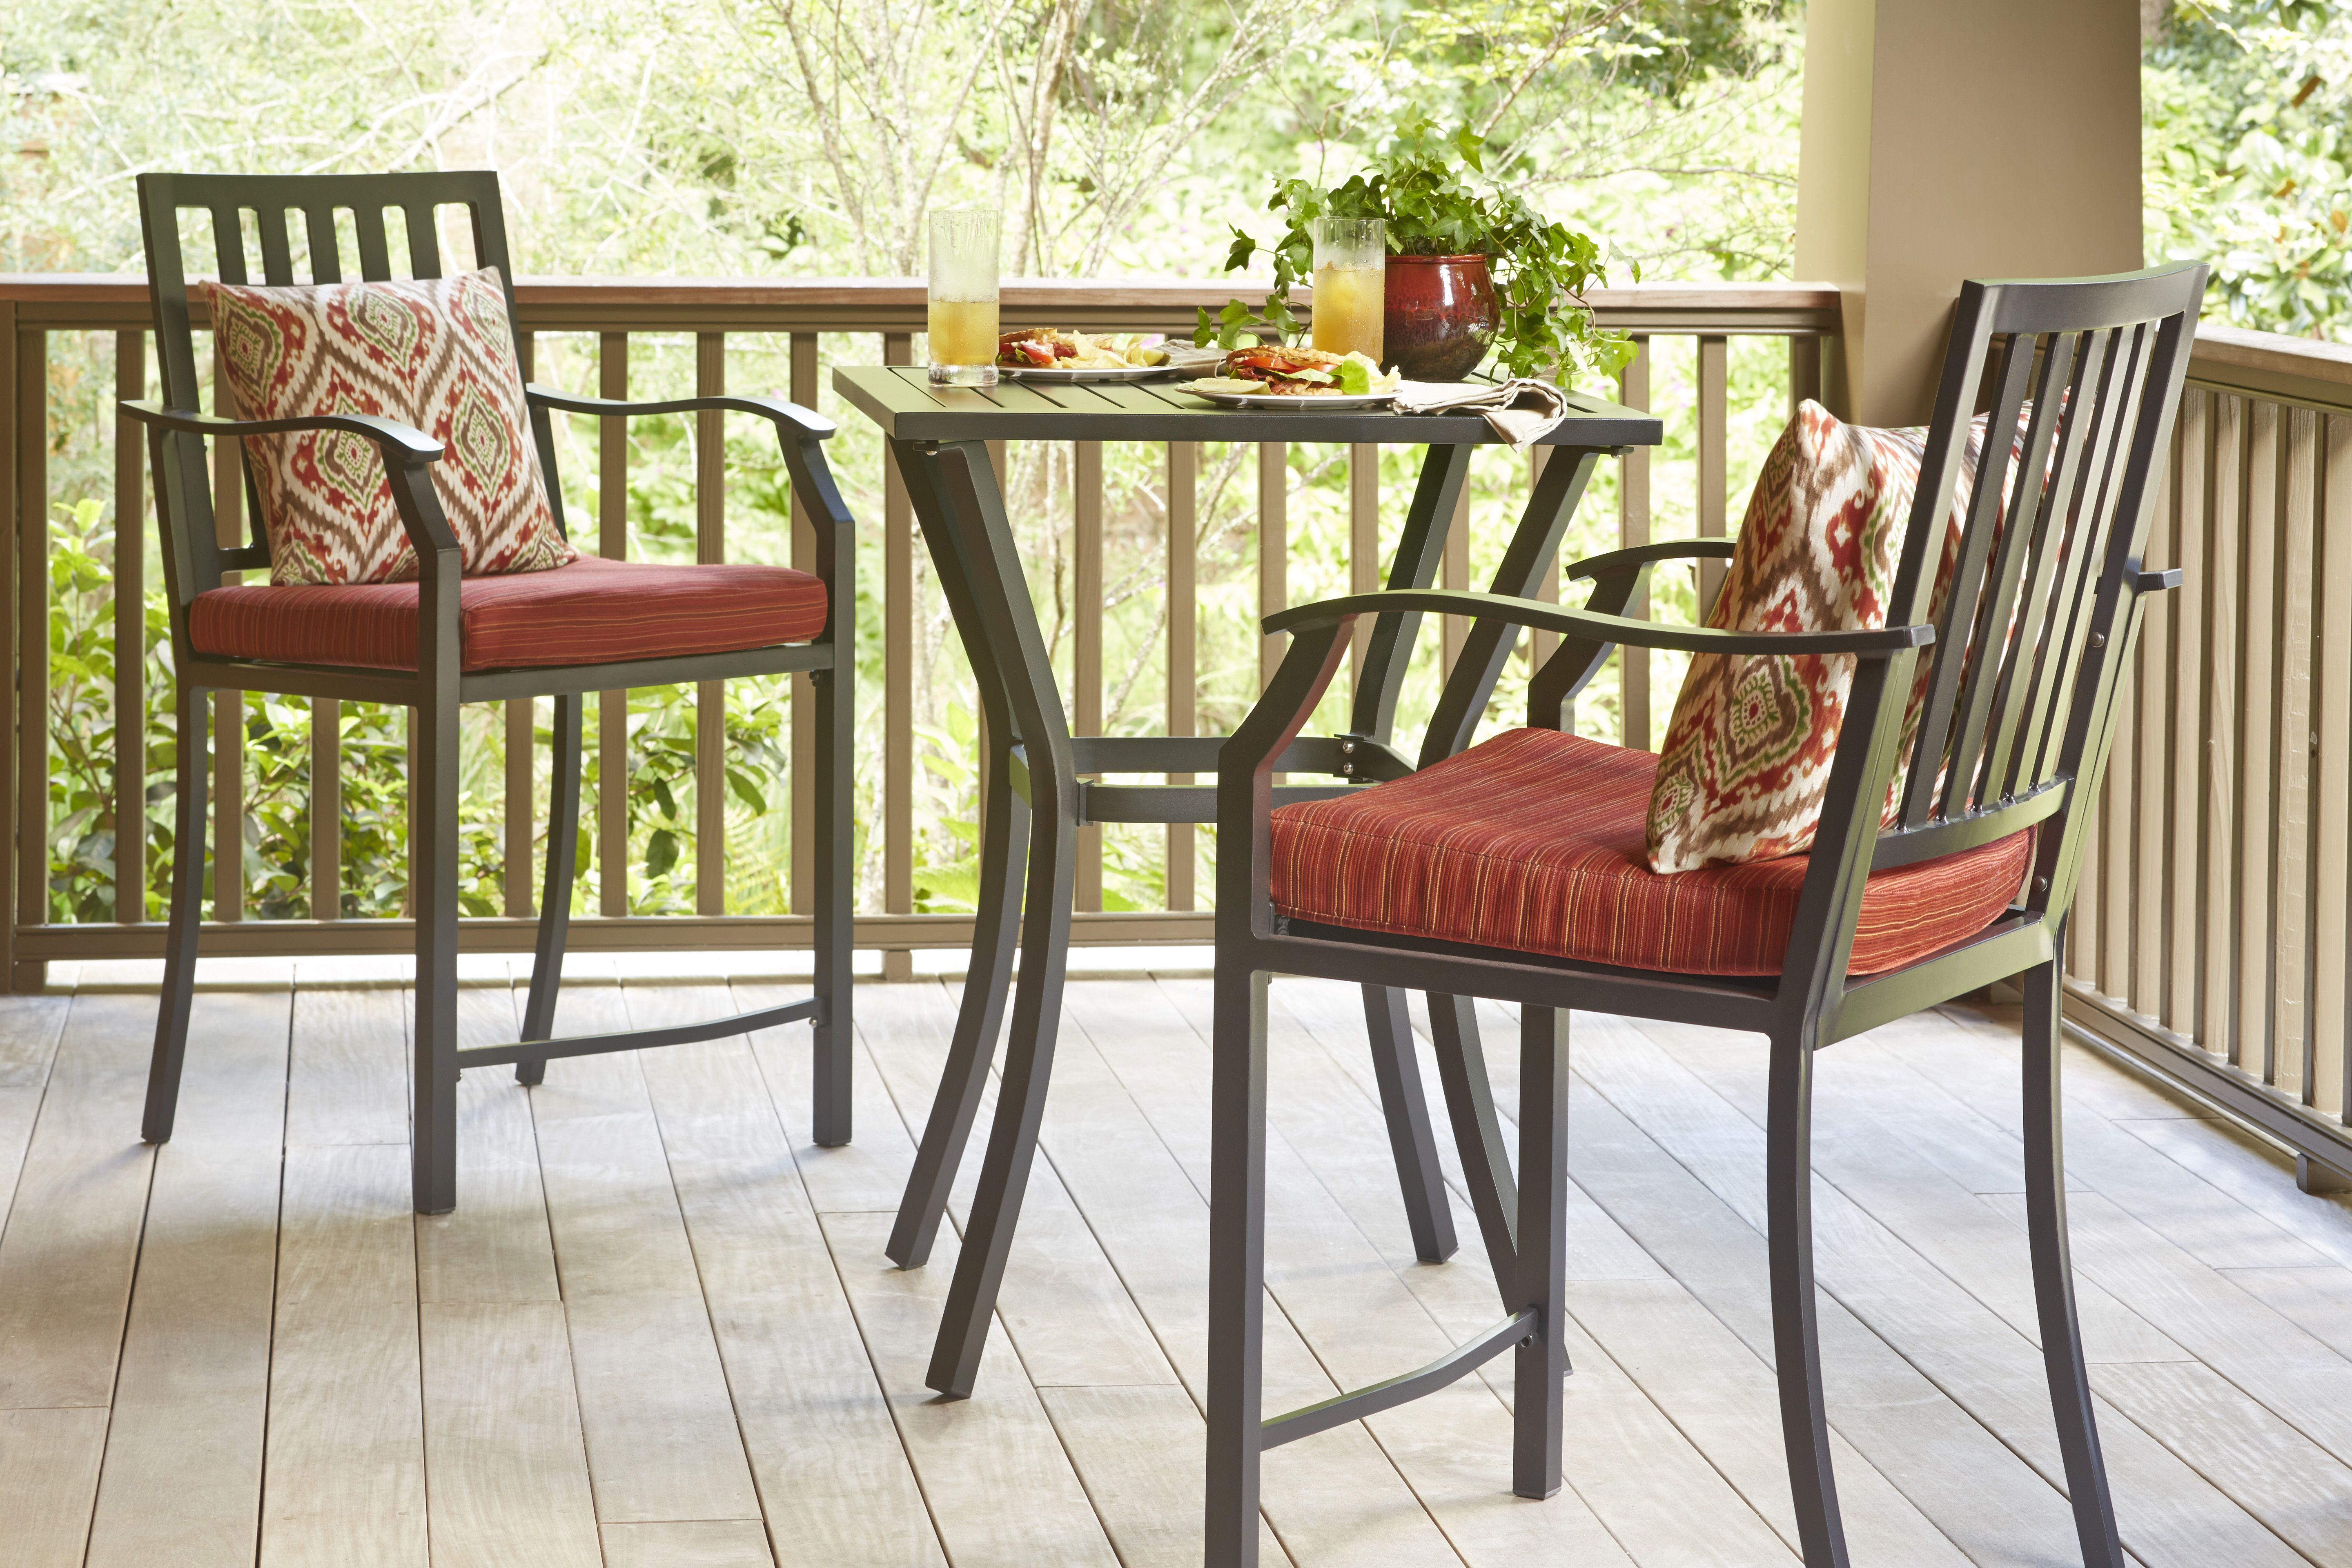 This balcony height patio set would be perfect for a small patio